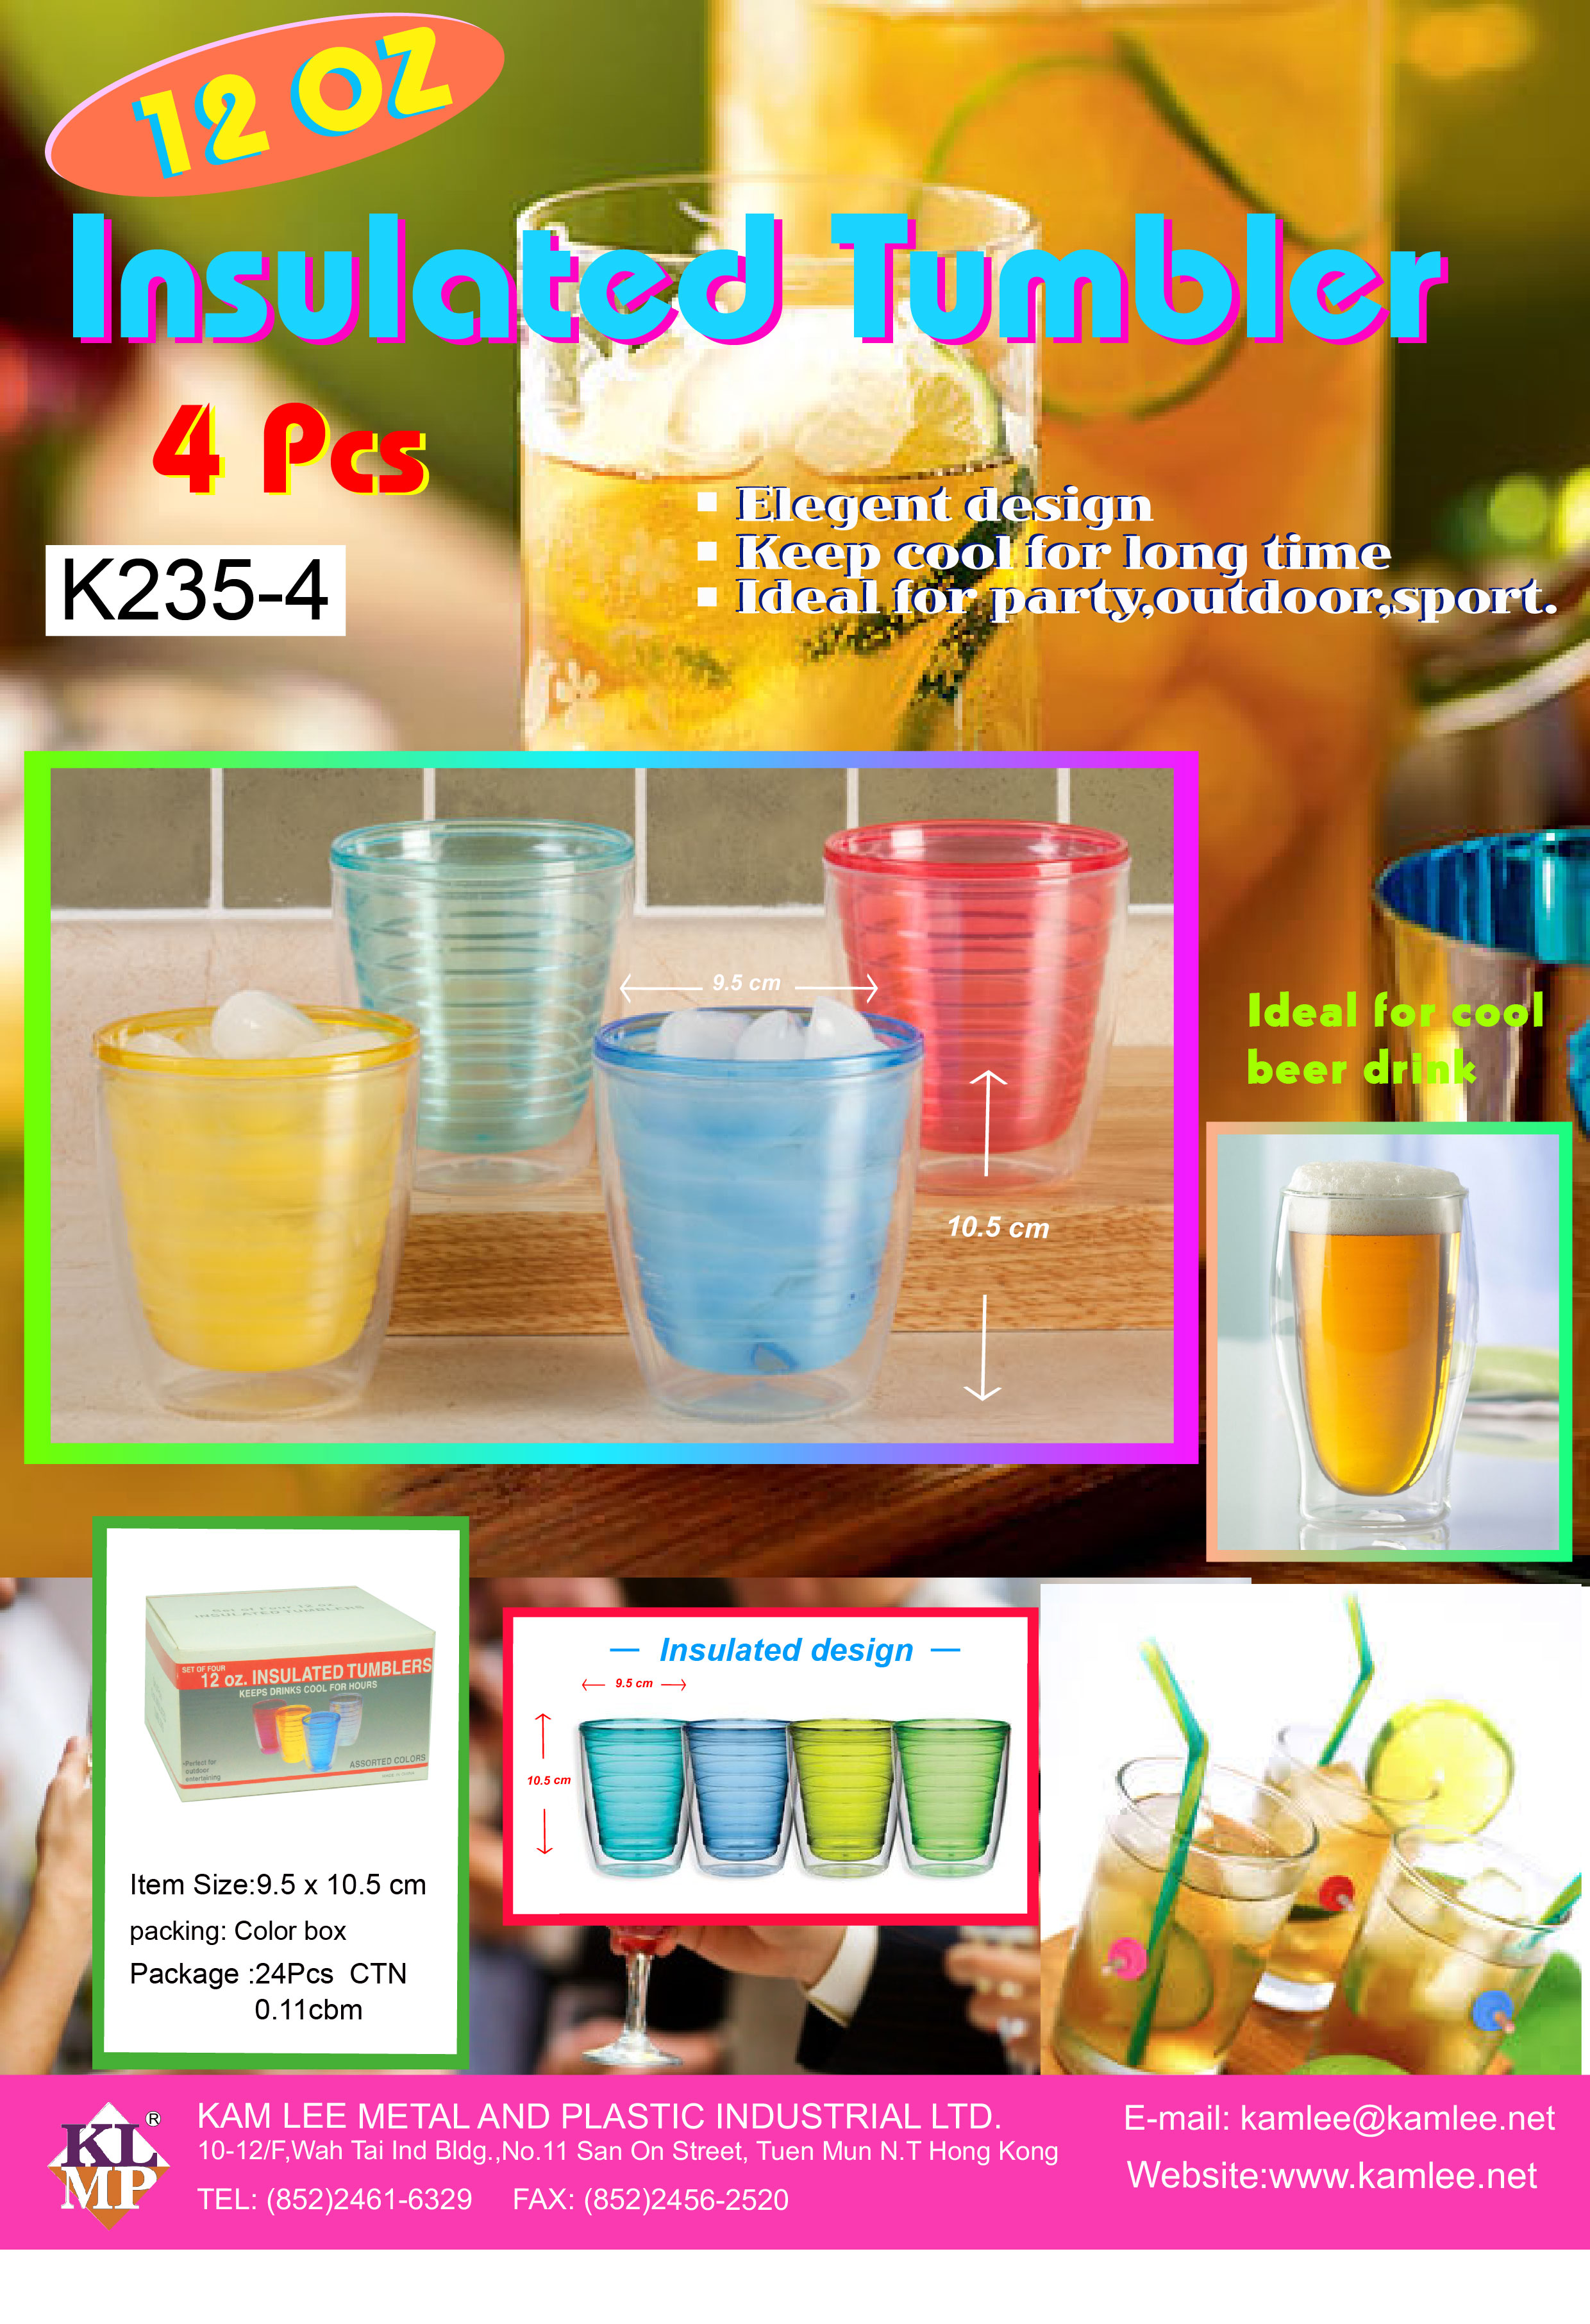 K235/4 S/4 PLASTIC INSULATED TUMBLER (12 OZ)